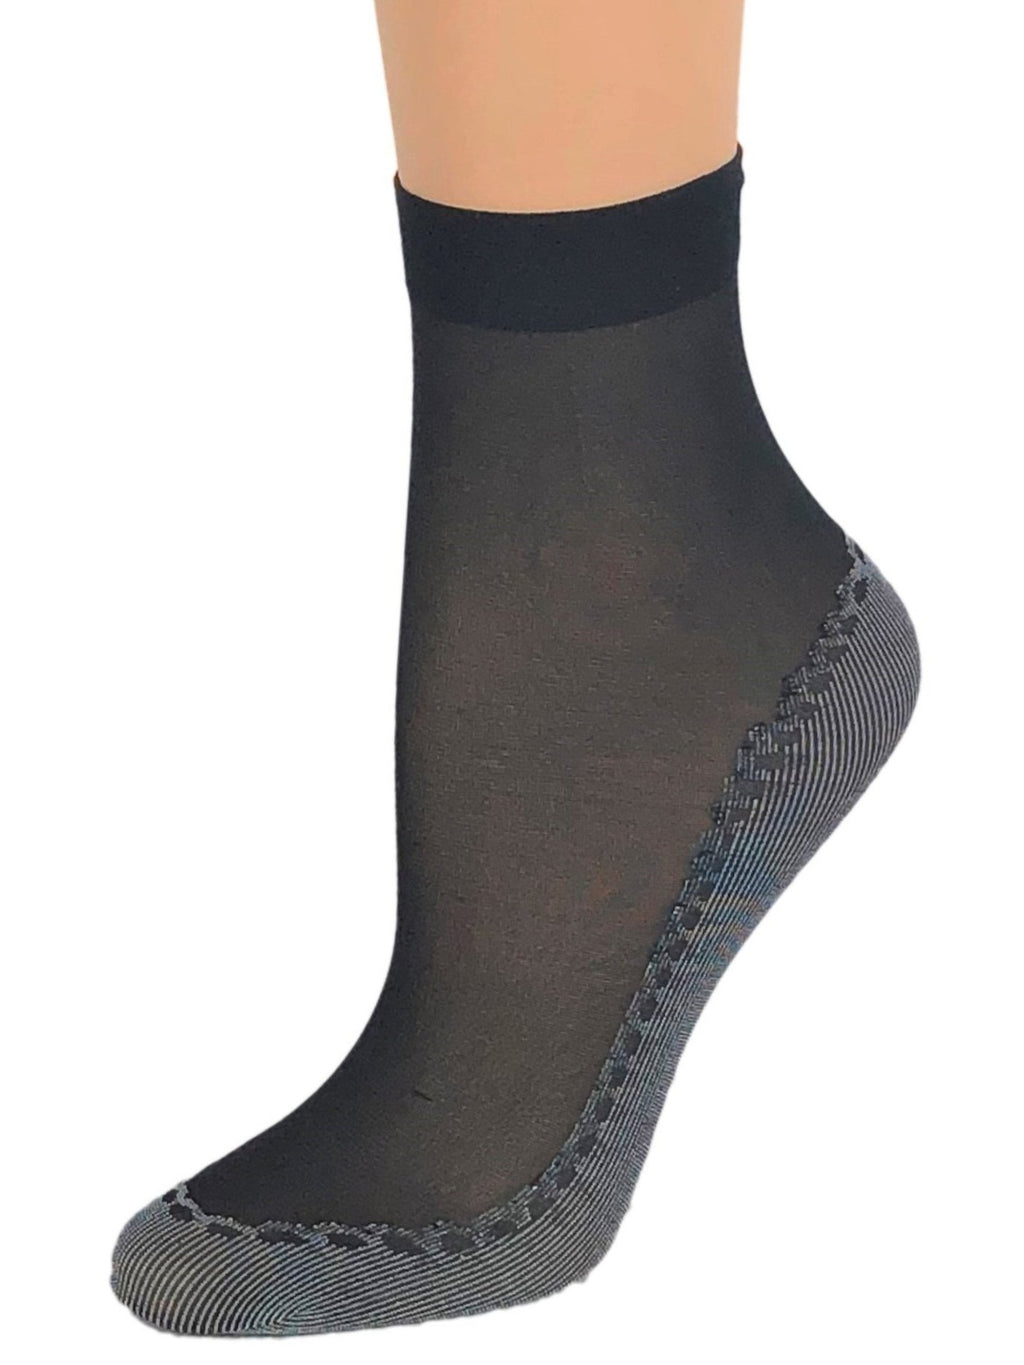 Classy Black Sheer Socks - Global Trendz Fashion®